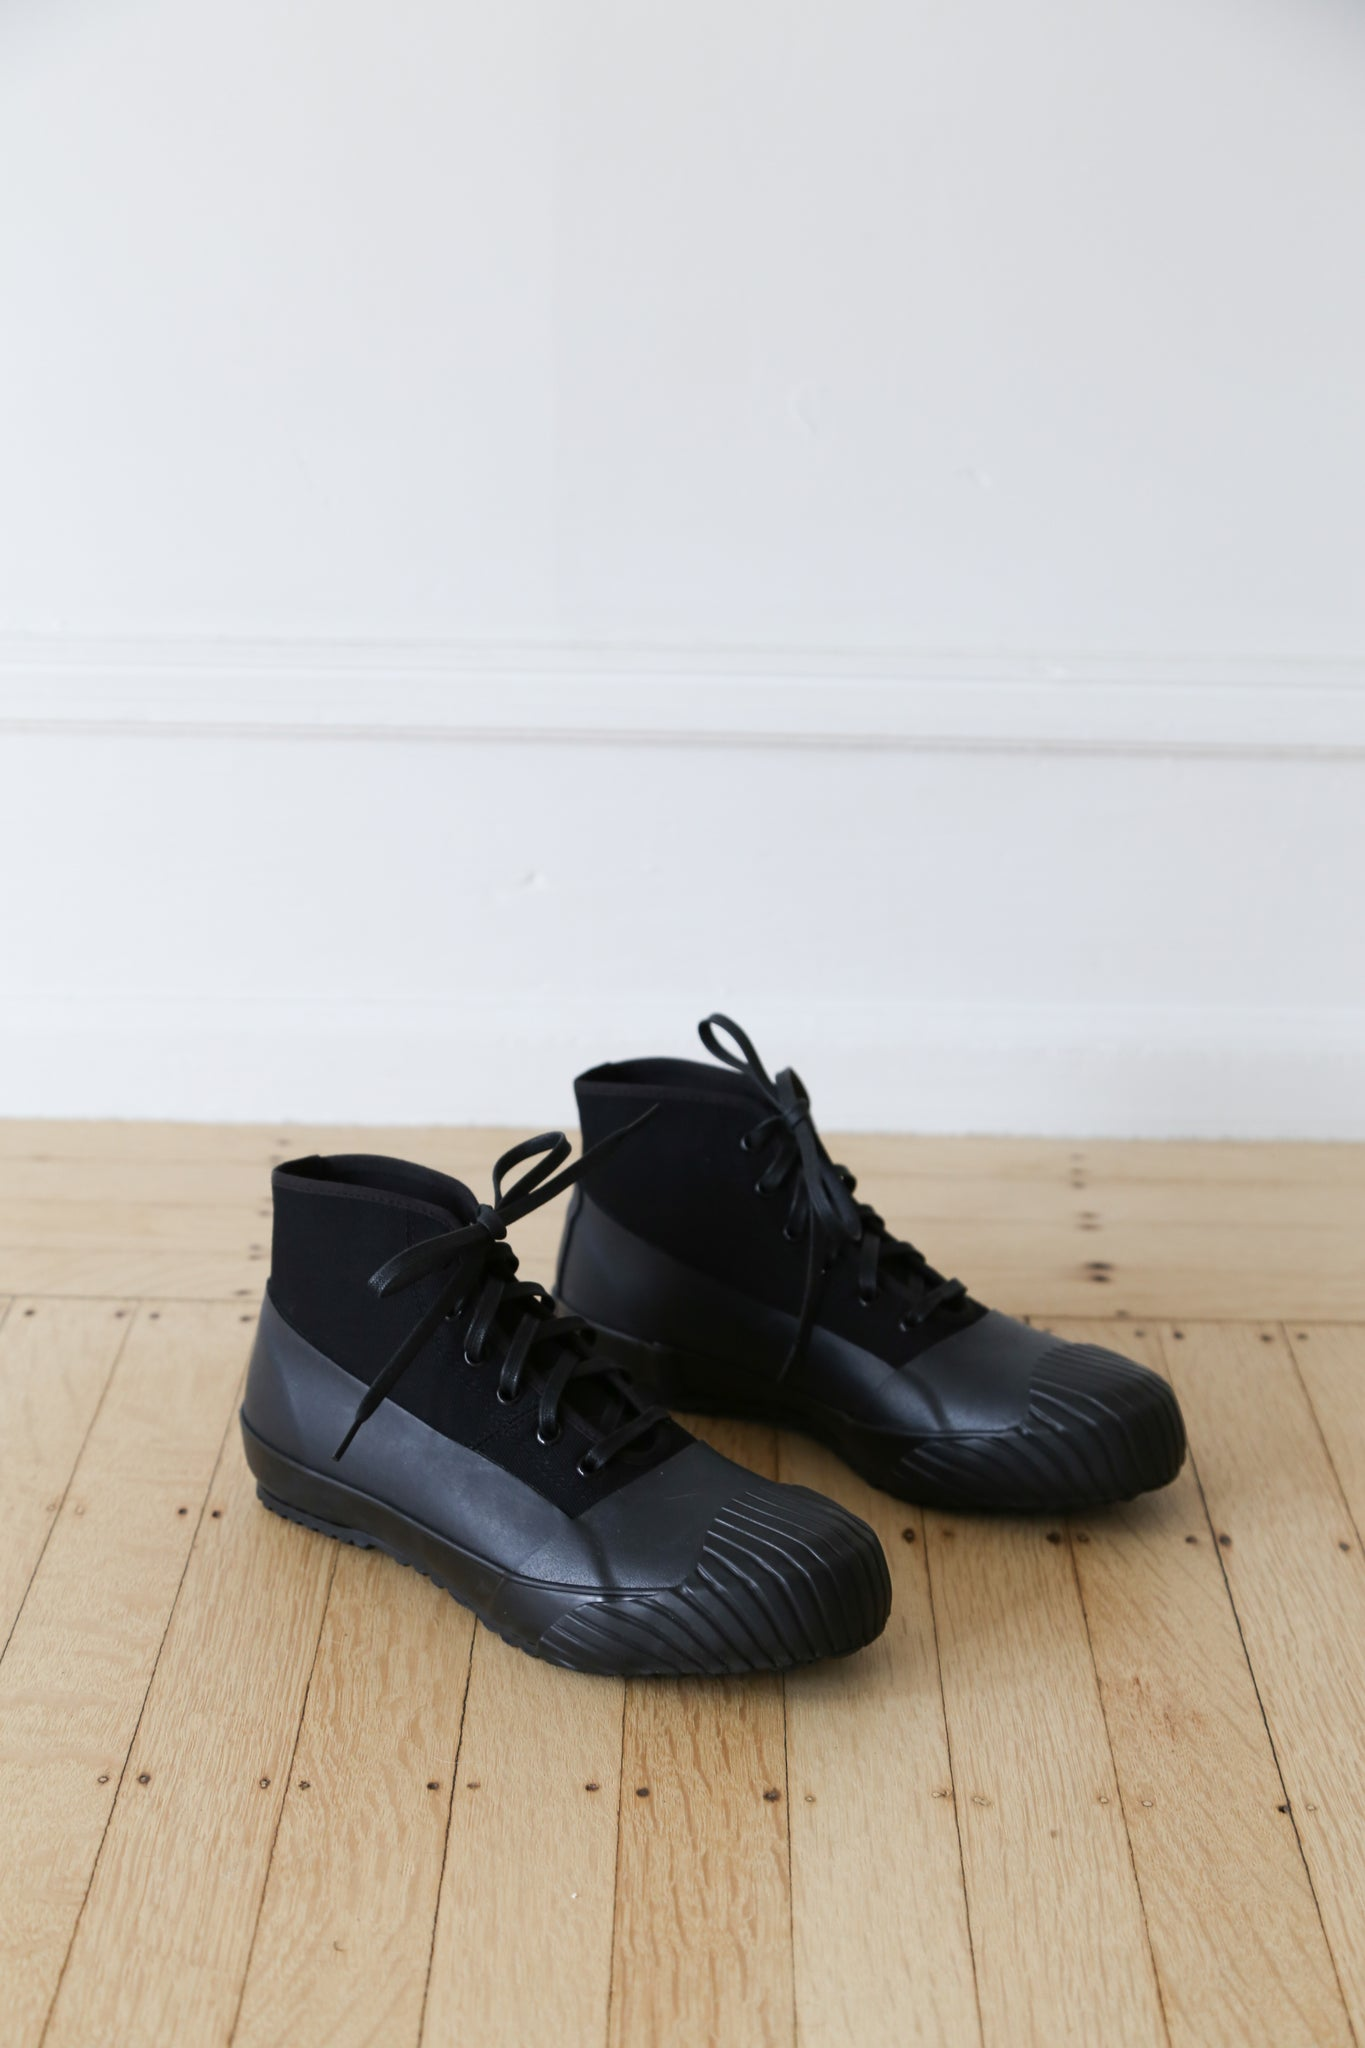 Moonstar Allweather Boot Black